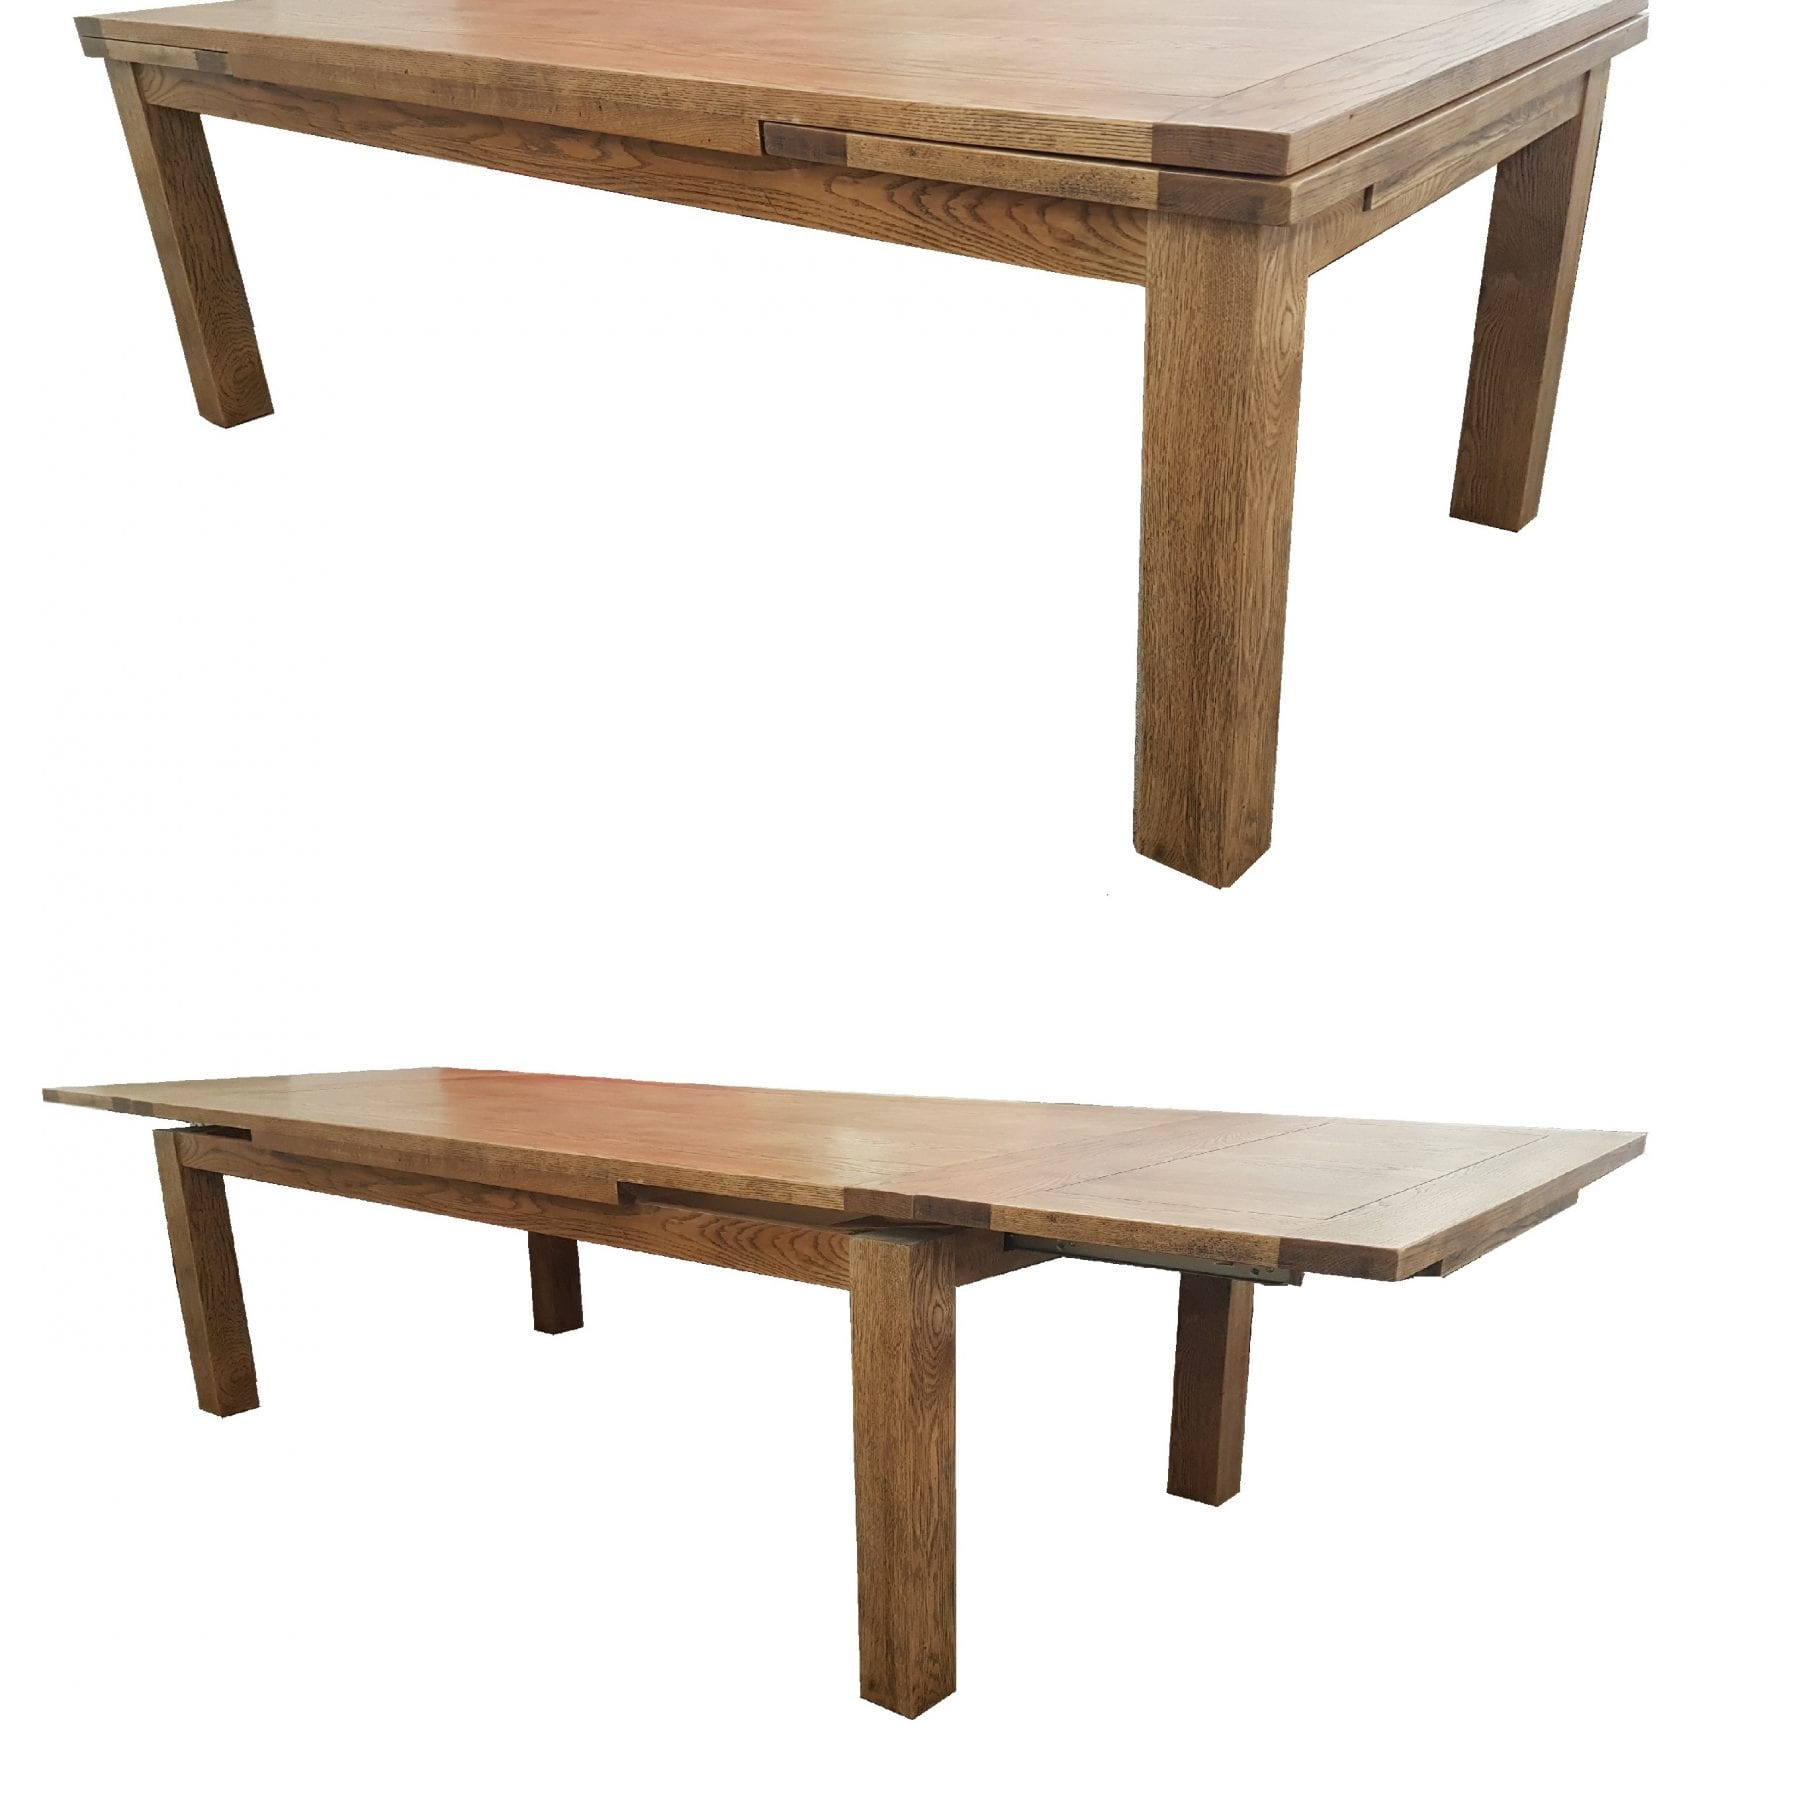 Oak Mechanical Extension Table Open and Closed